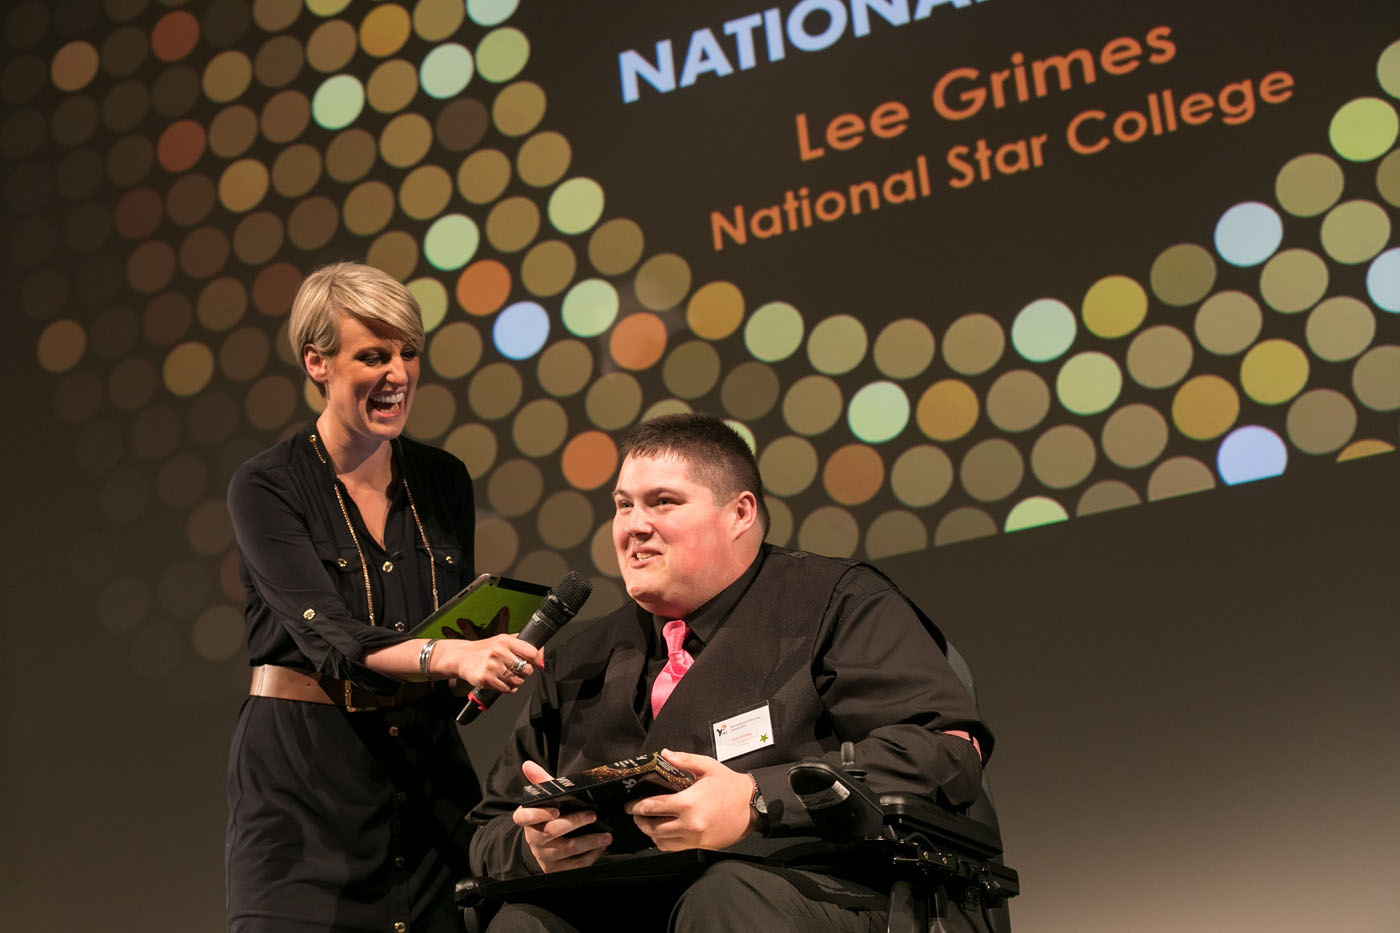 Lee Grimes from National Star College, picking up his special achievement award.